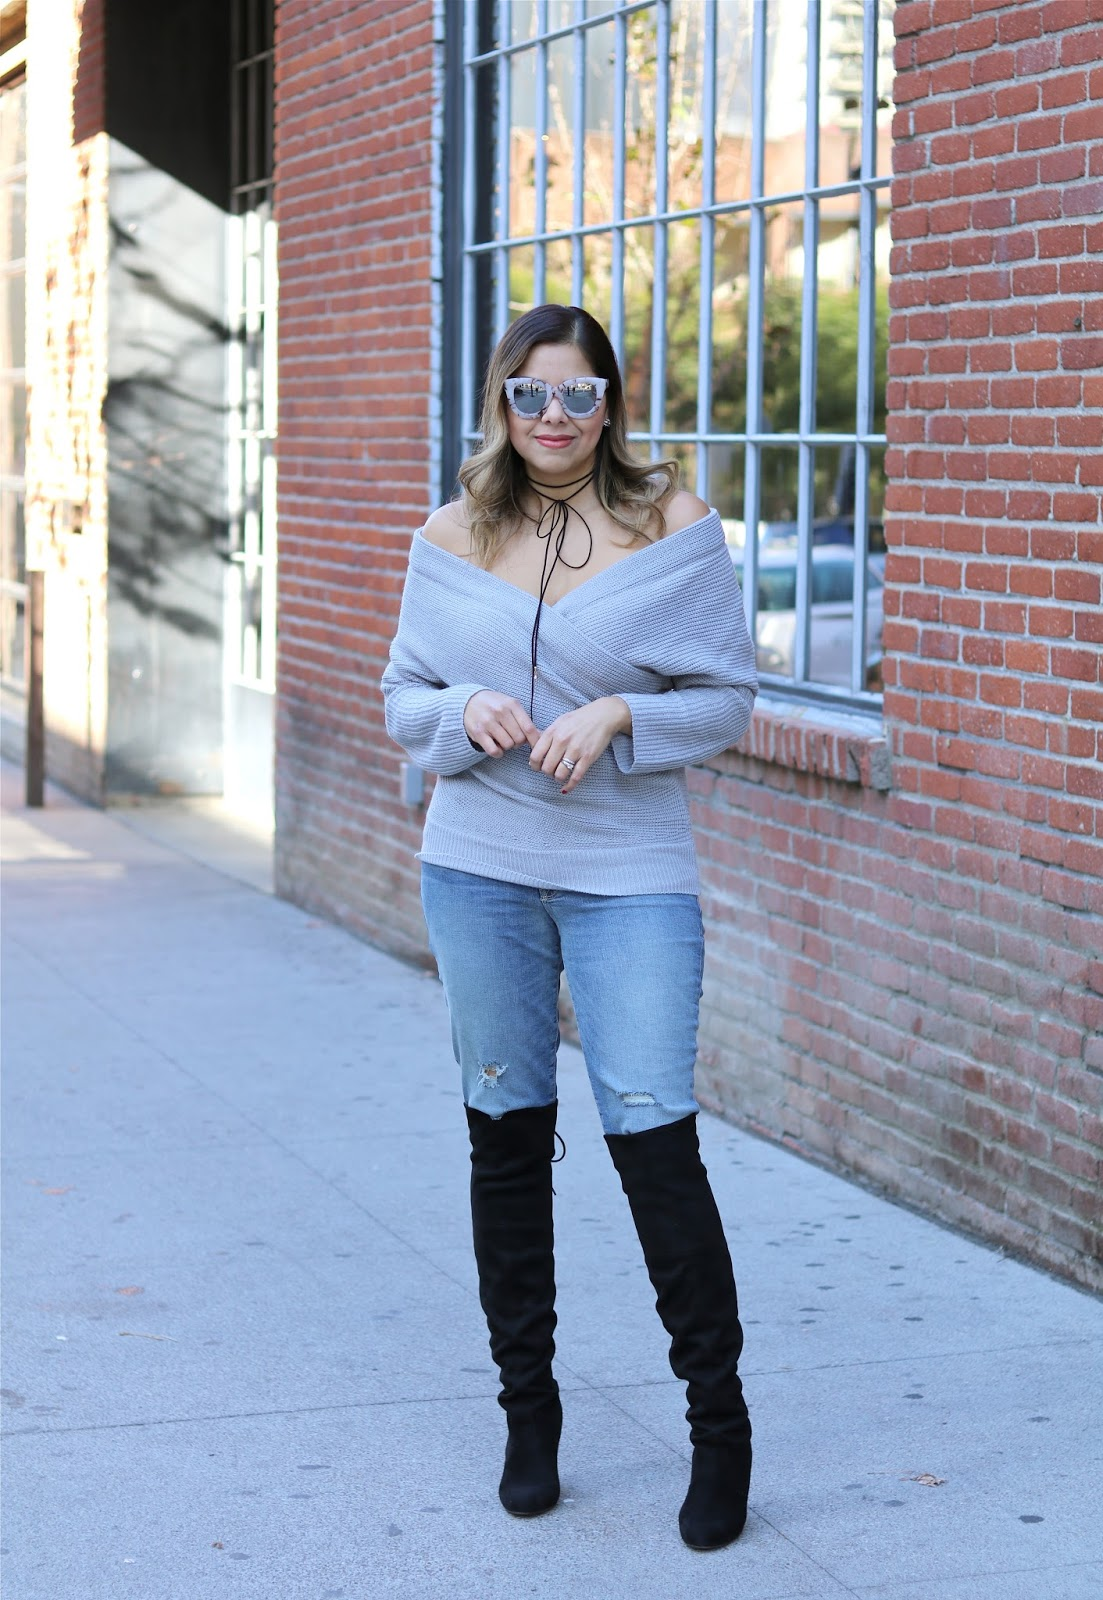 top san diego fashion blogger, chicwish sweater outfit idea, over the knee boots with distressed jeans